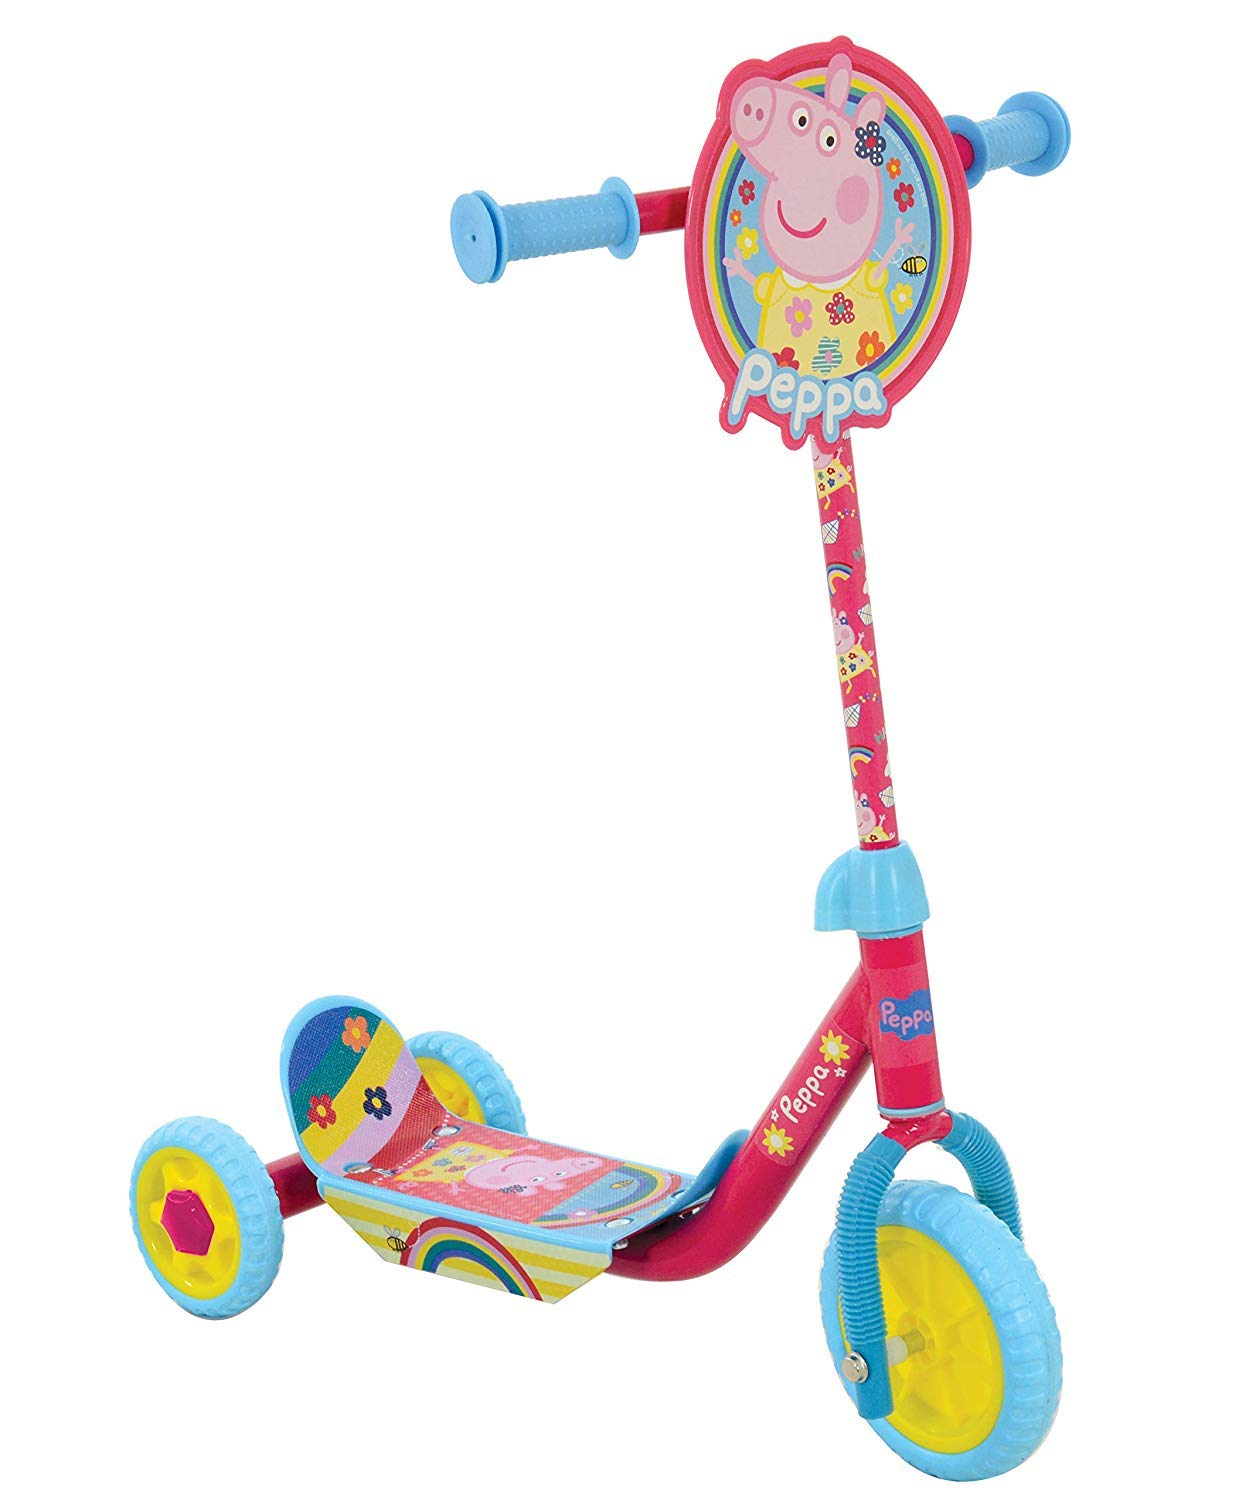 Peppa Pig M14266 - Patinete My First: Amazon.es: Juguetes y ...